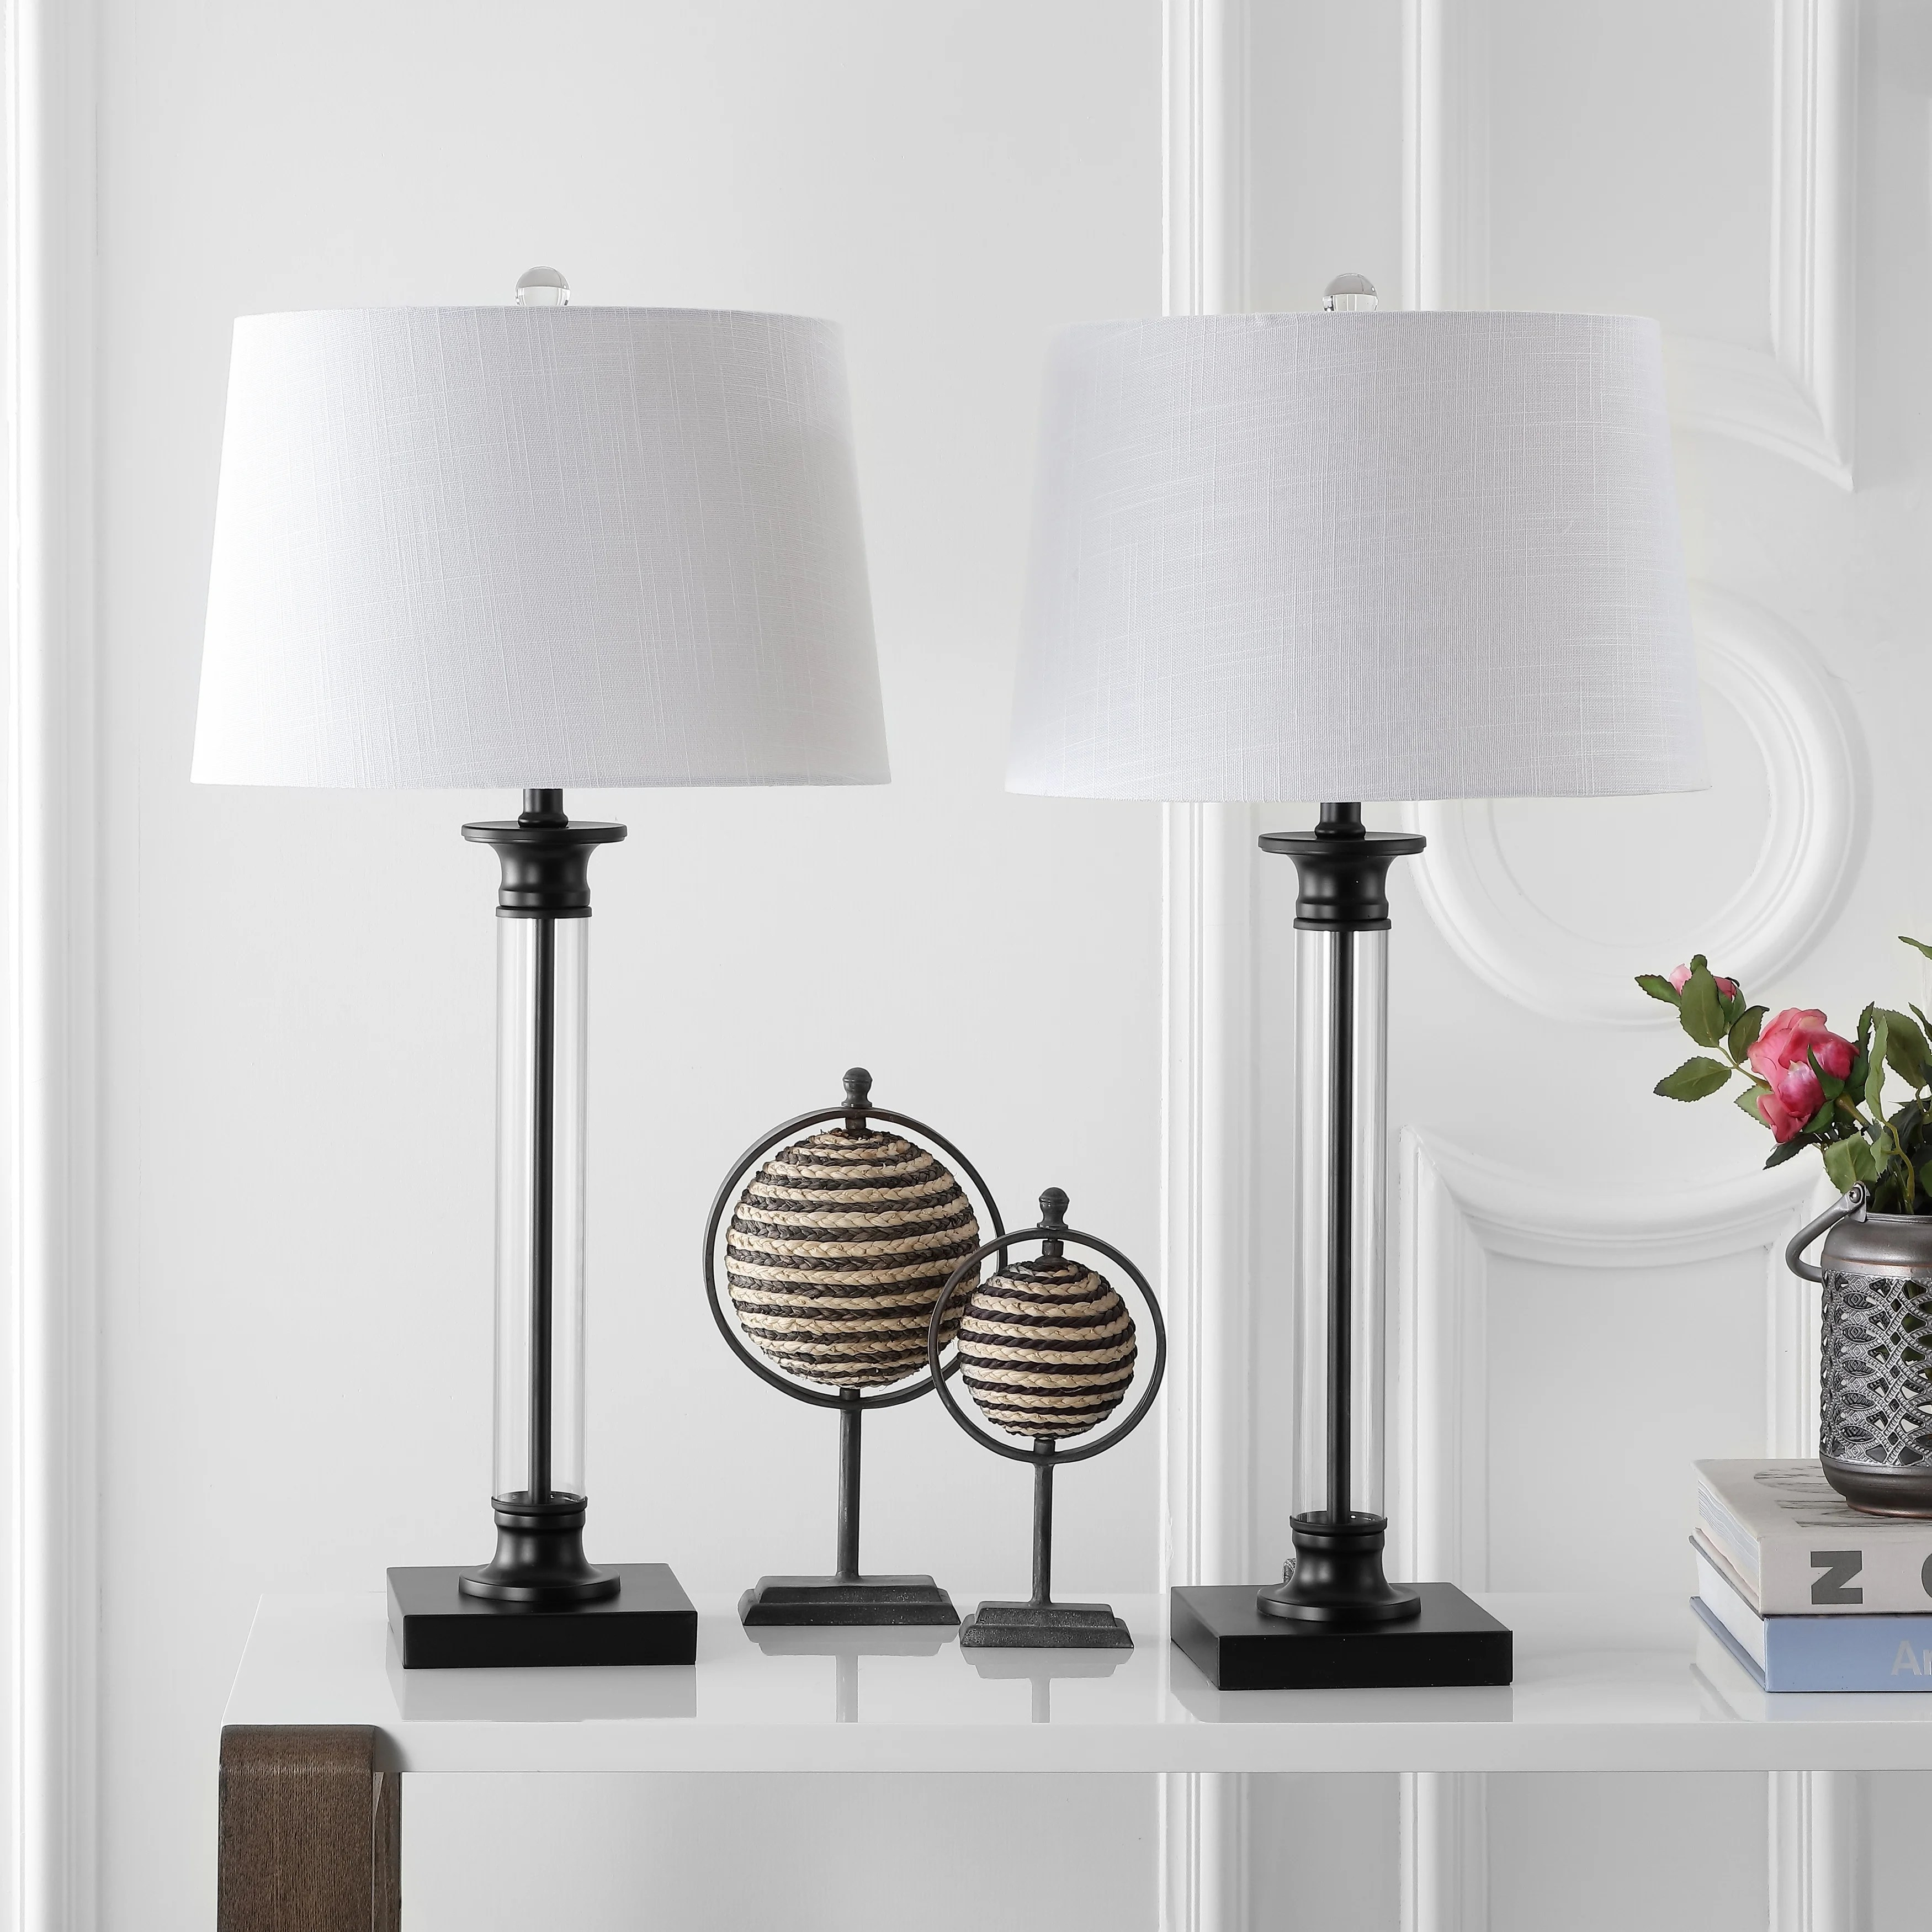 Mason 30 Glass And Metal Led Table Lamp Black Clear Set Of 2 By Jonathan Y On Sale Overstock 20447521